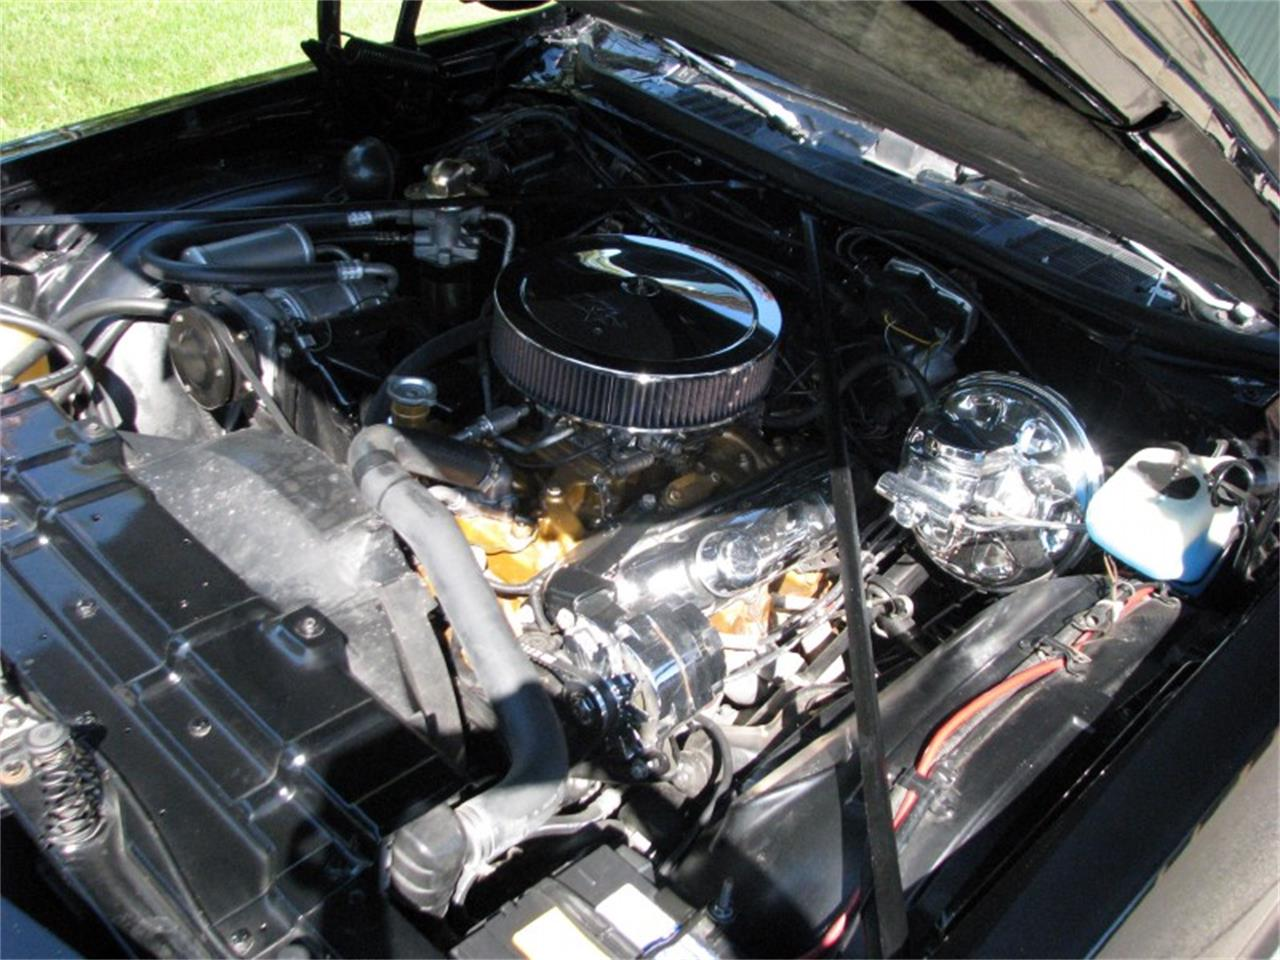 Large Picture of '75 Oldsmobile 442 located in Clarkston Michigan - $22,500.00 - J4WG